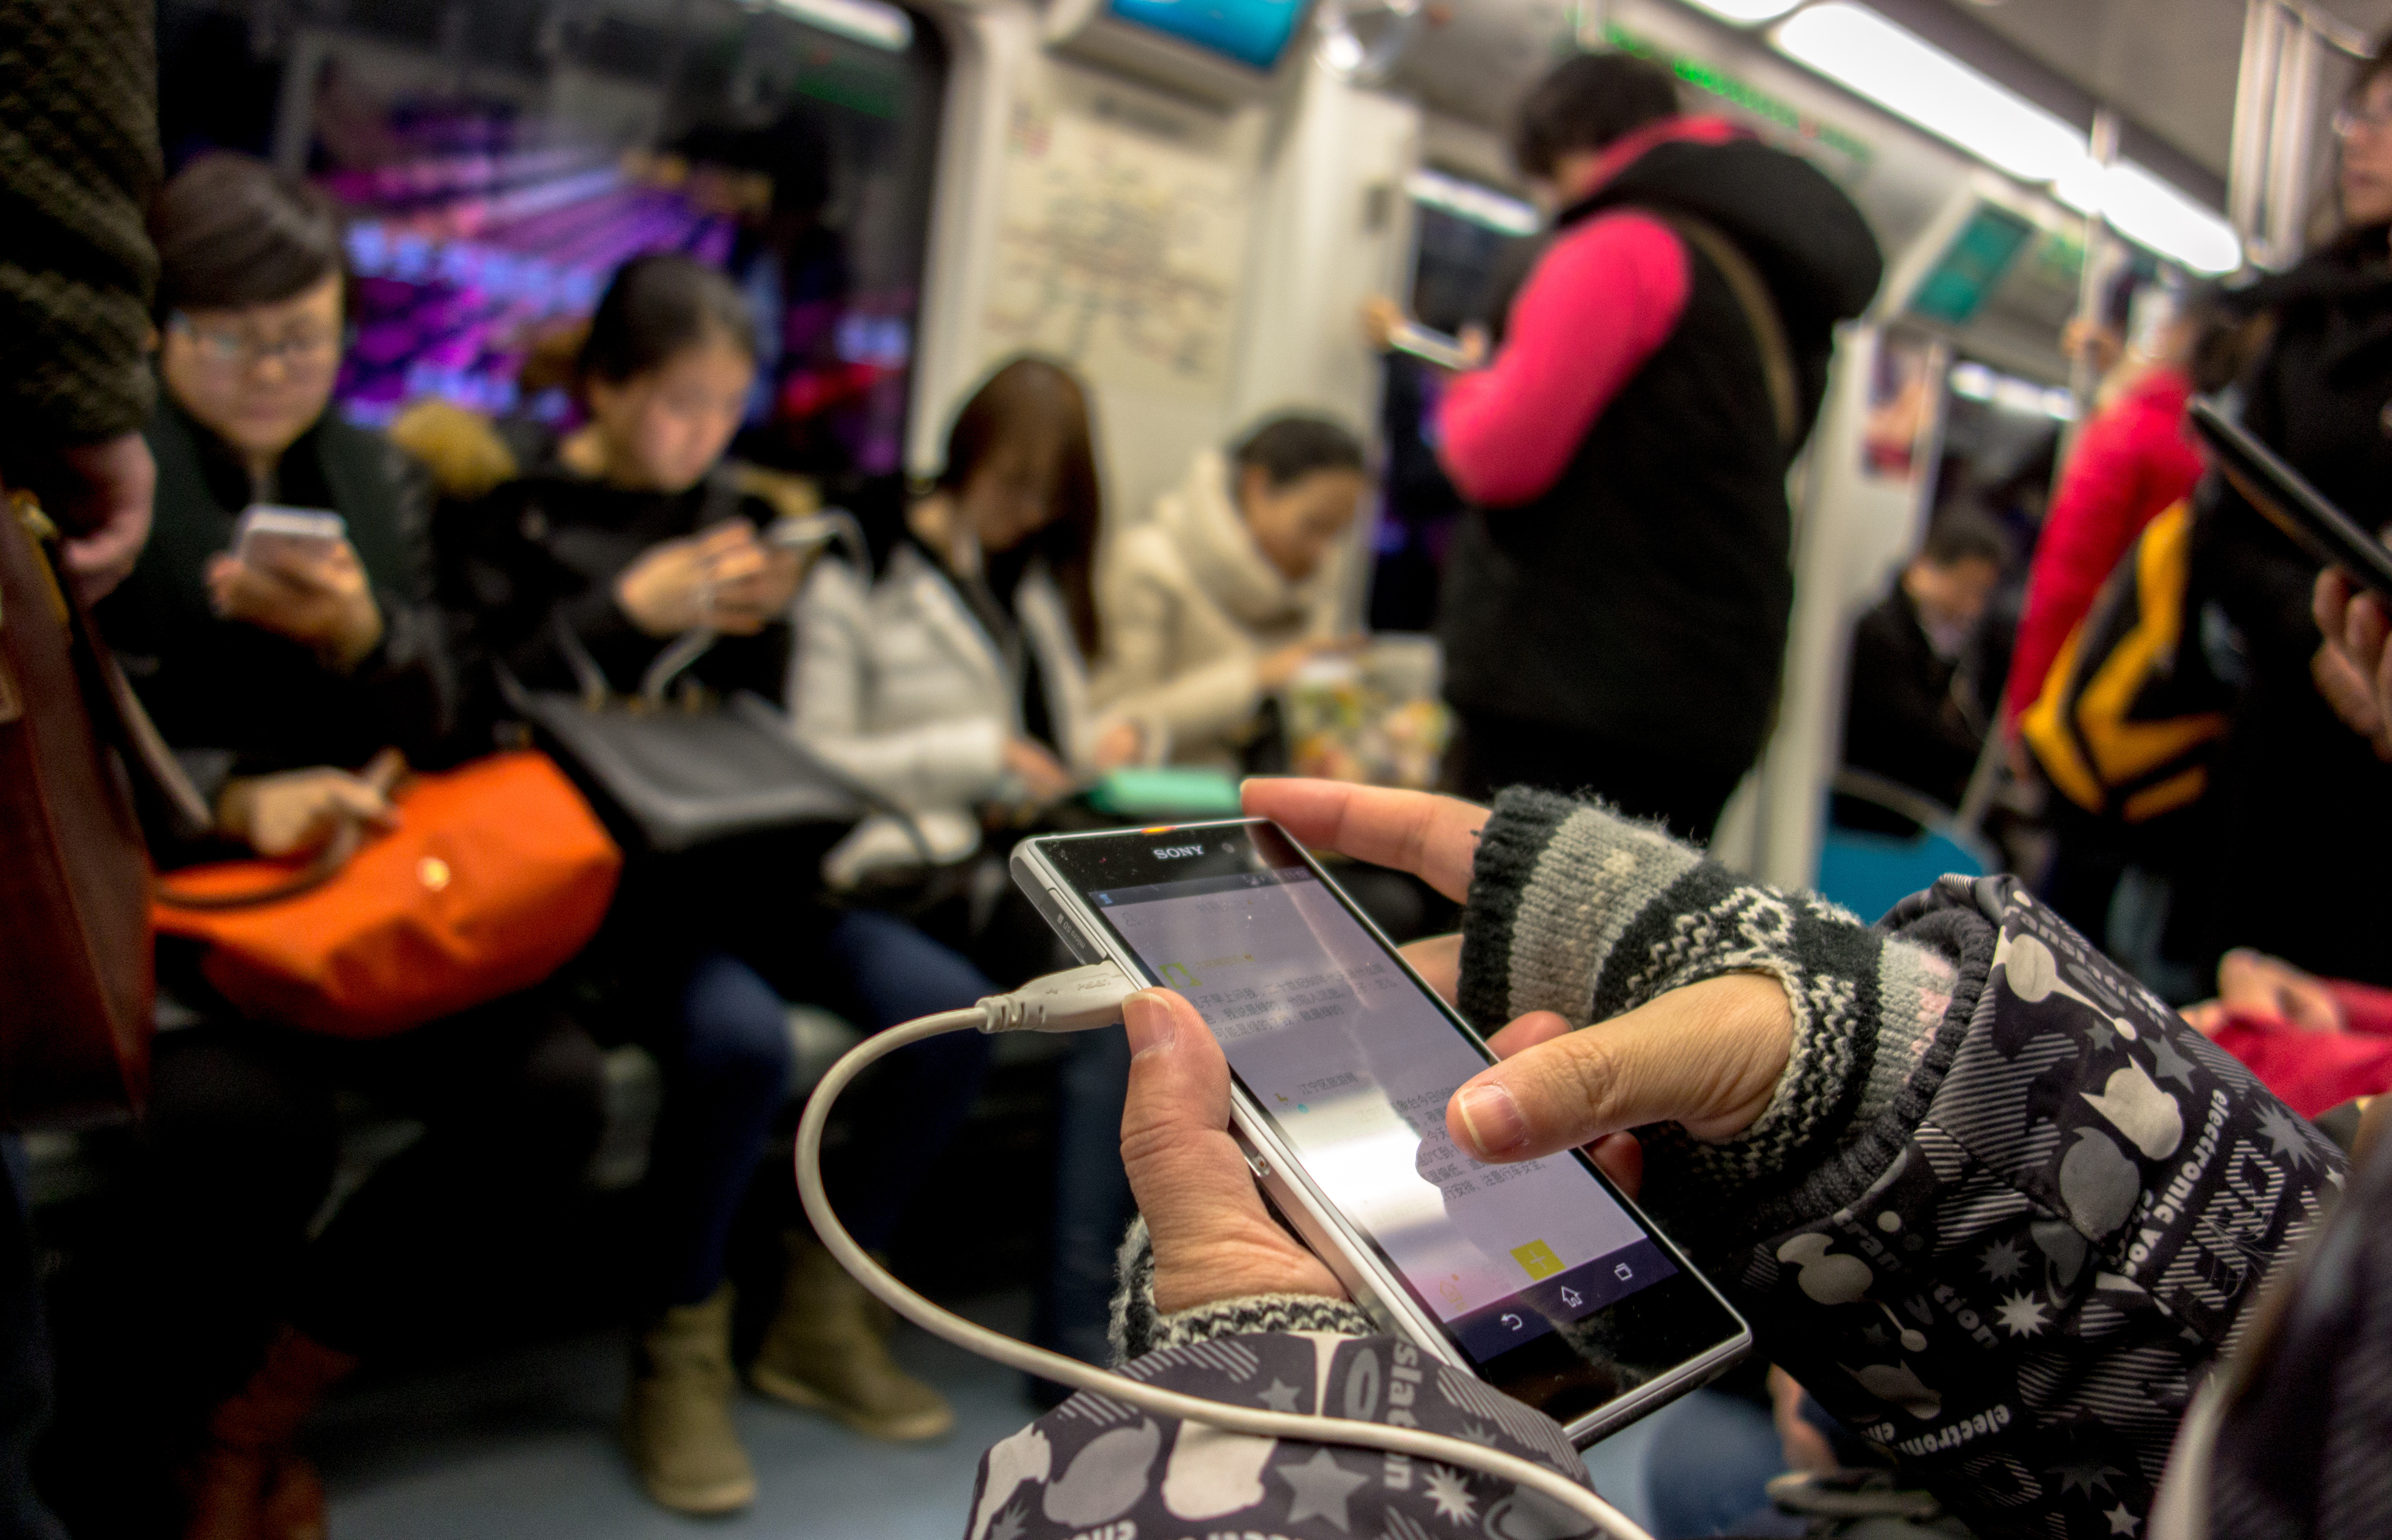 Passengers read news or watch videos on their smart phones in the subway on Jan. 28, 2015.